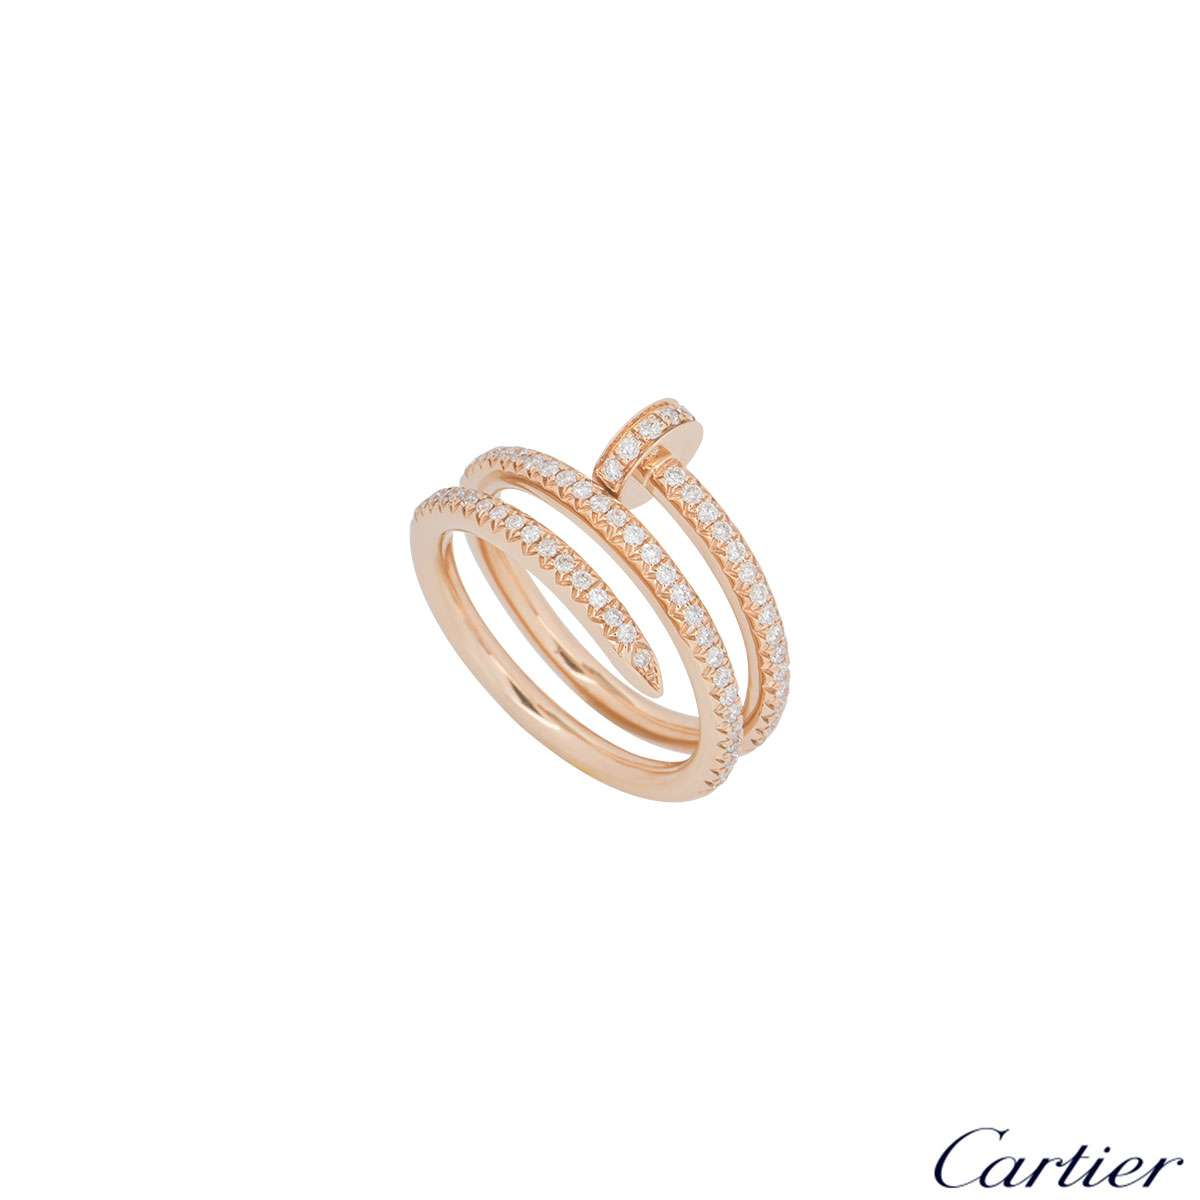 Cartier Rose Gold Full Diamond Juste Un Clou Ring Size 52 B4210952